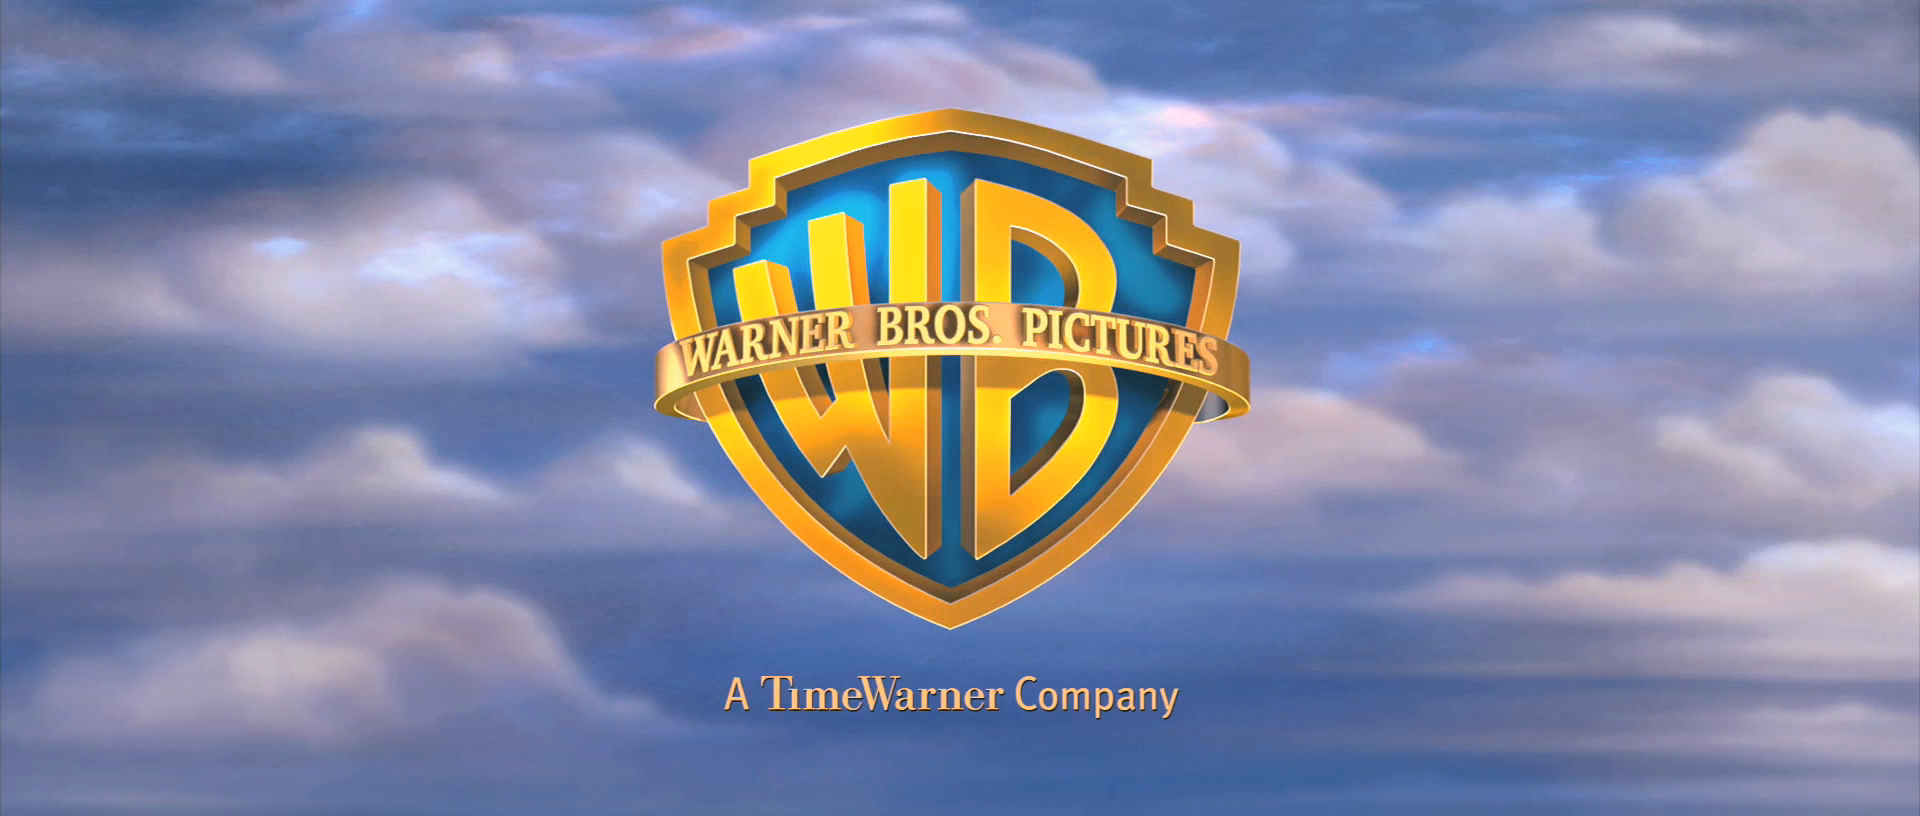 warner bros and bittorrent The warner bros sound effects library the warner bros sound effects library mp3 - sound effects - 192 kbps - joint stereo now, for the first time, warner bros brings you, on 5 side-splitting cds, over 1400 hilarious digitally remastered sound effects that have helped make warner bros cartoons so unforgettable for so many years.